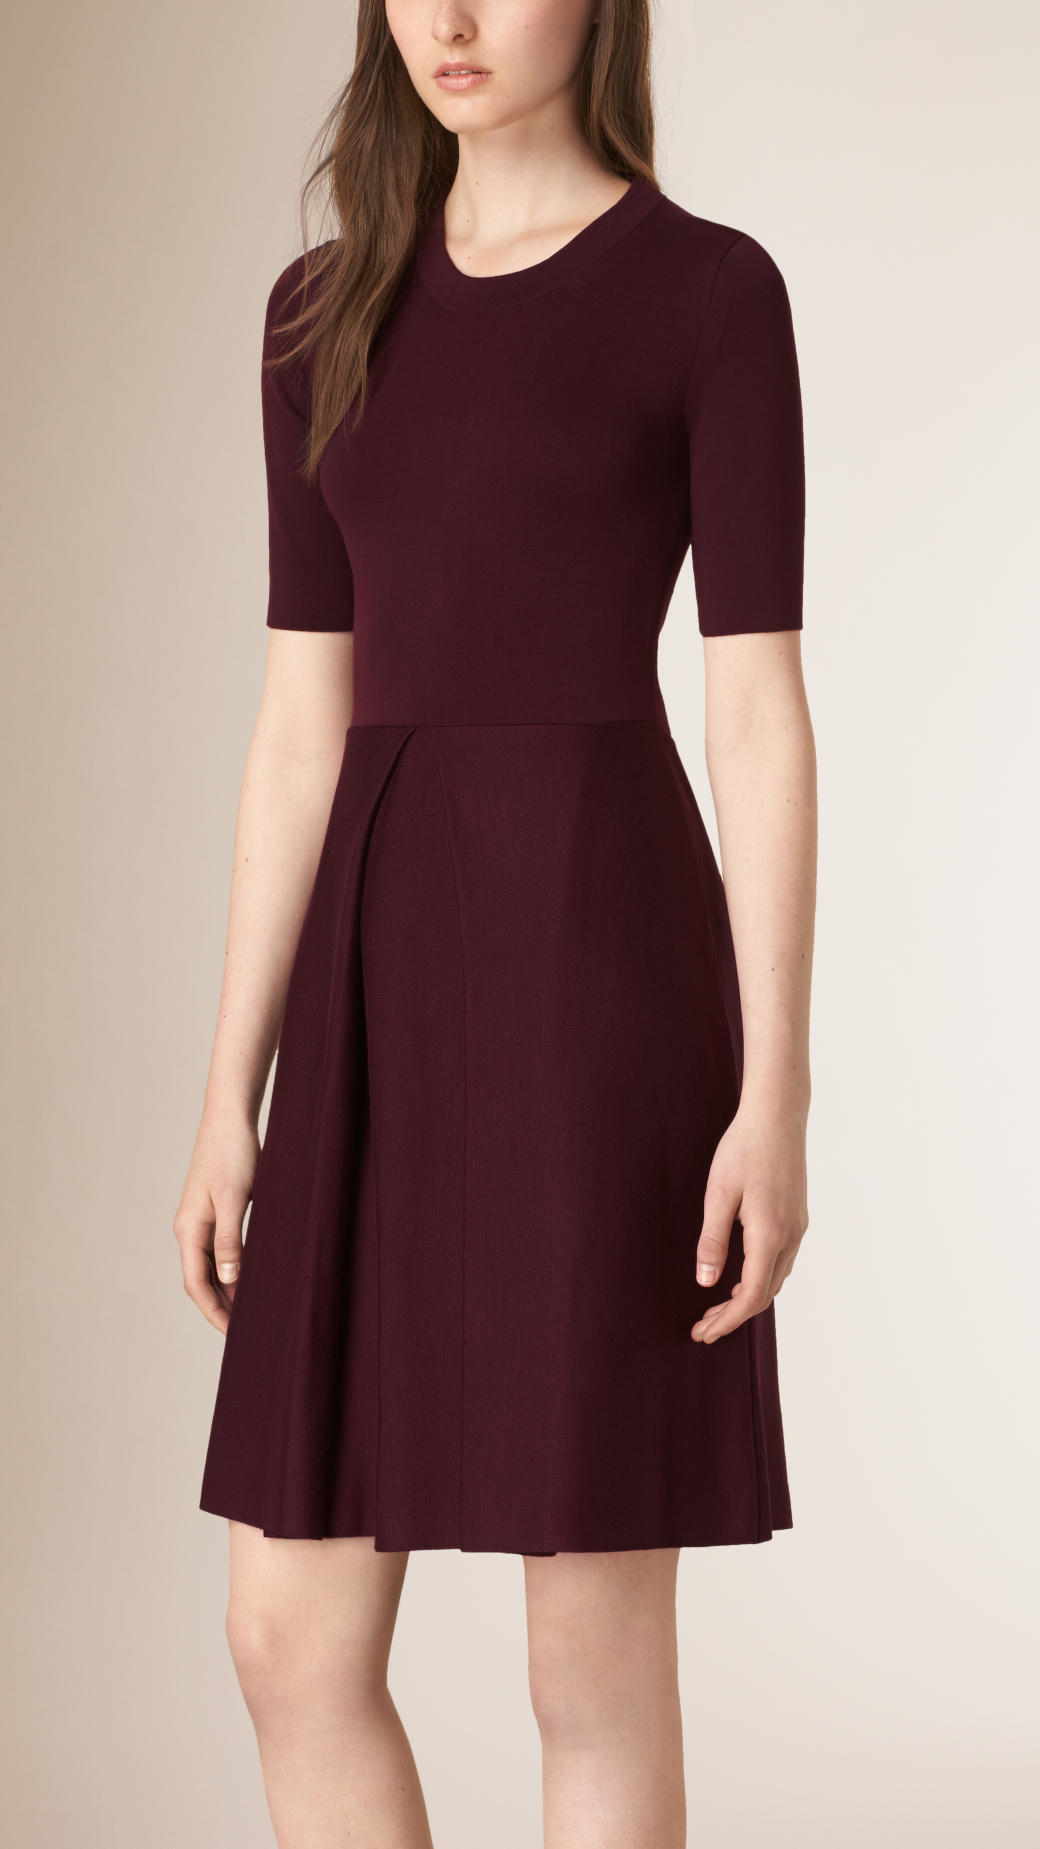 Burberry Purple Dress - Best Gowns And Dresses Ideas & Reviews